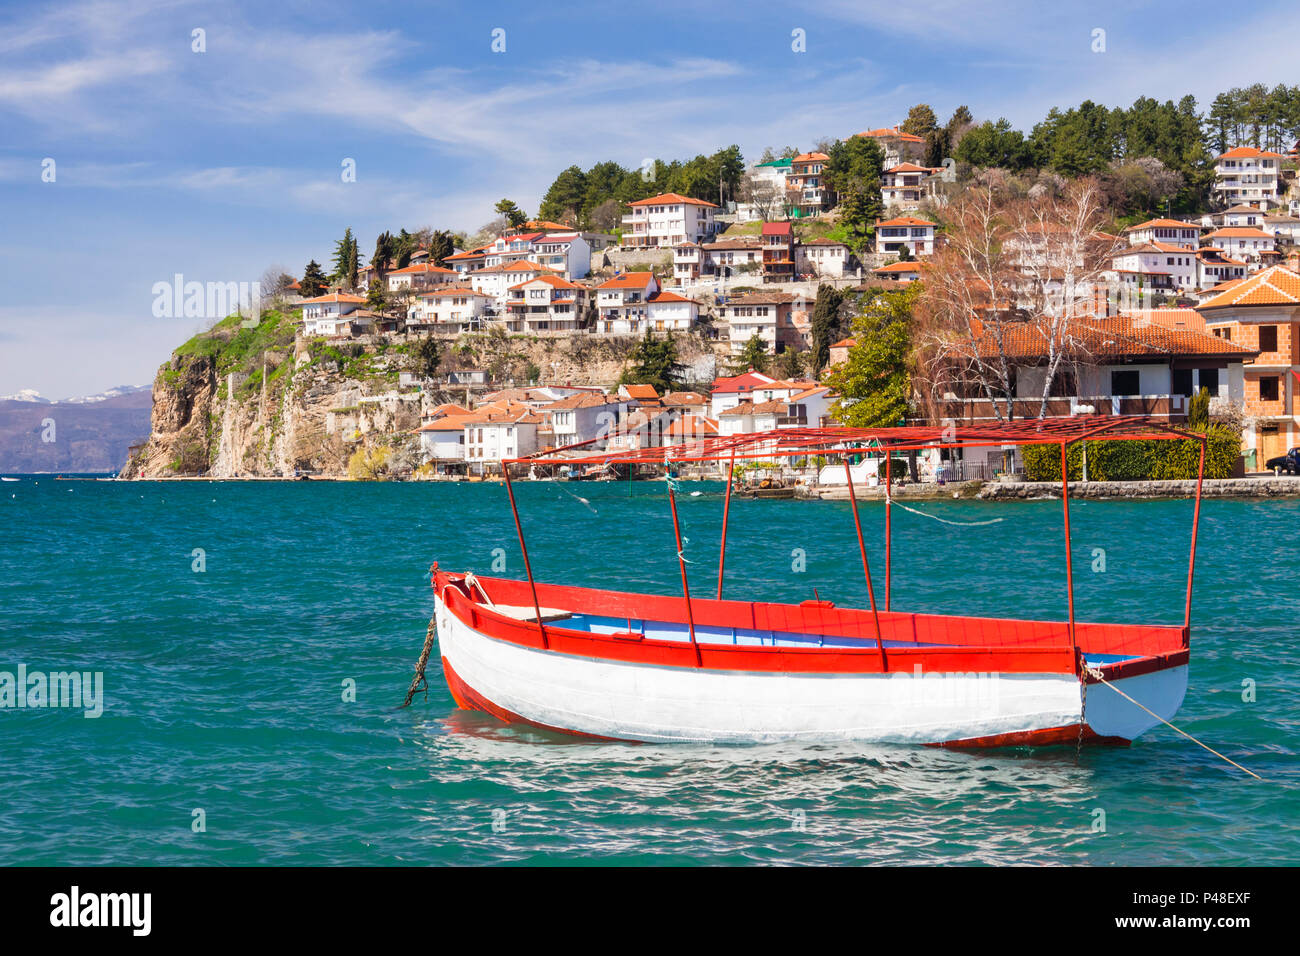 Ohrid, Republic of Macedonia : Boat moored on the Ohrid Lake with general view of the Unesco listed old town in background. Stock Photo